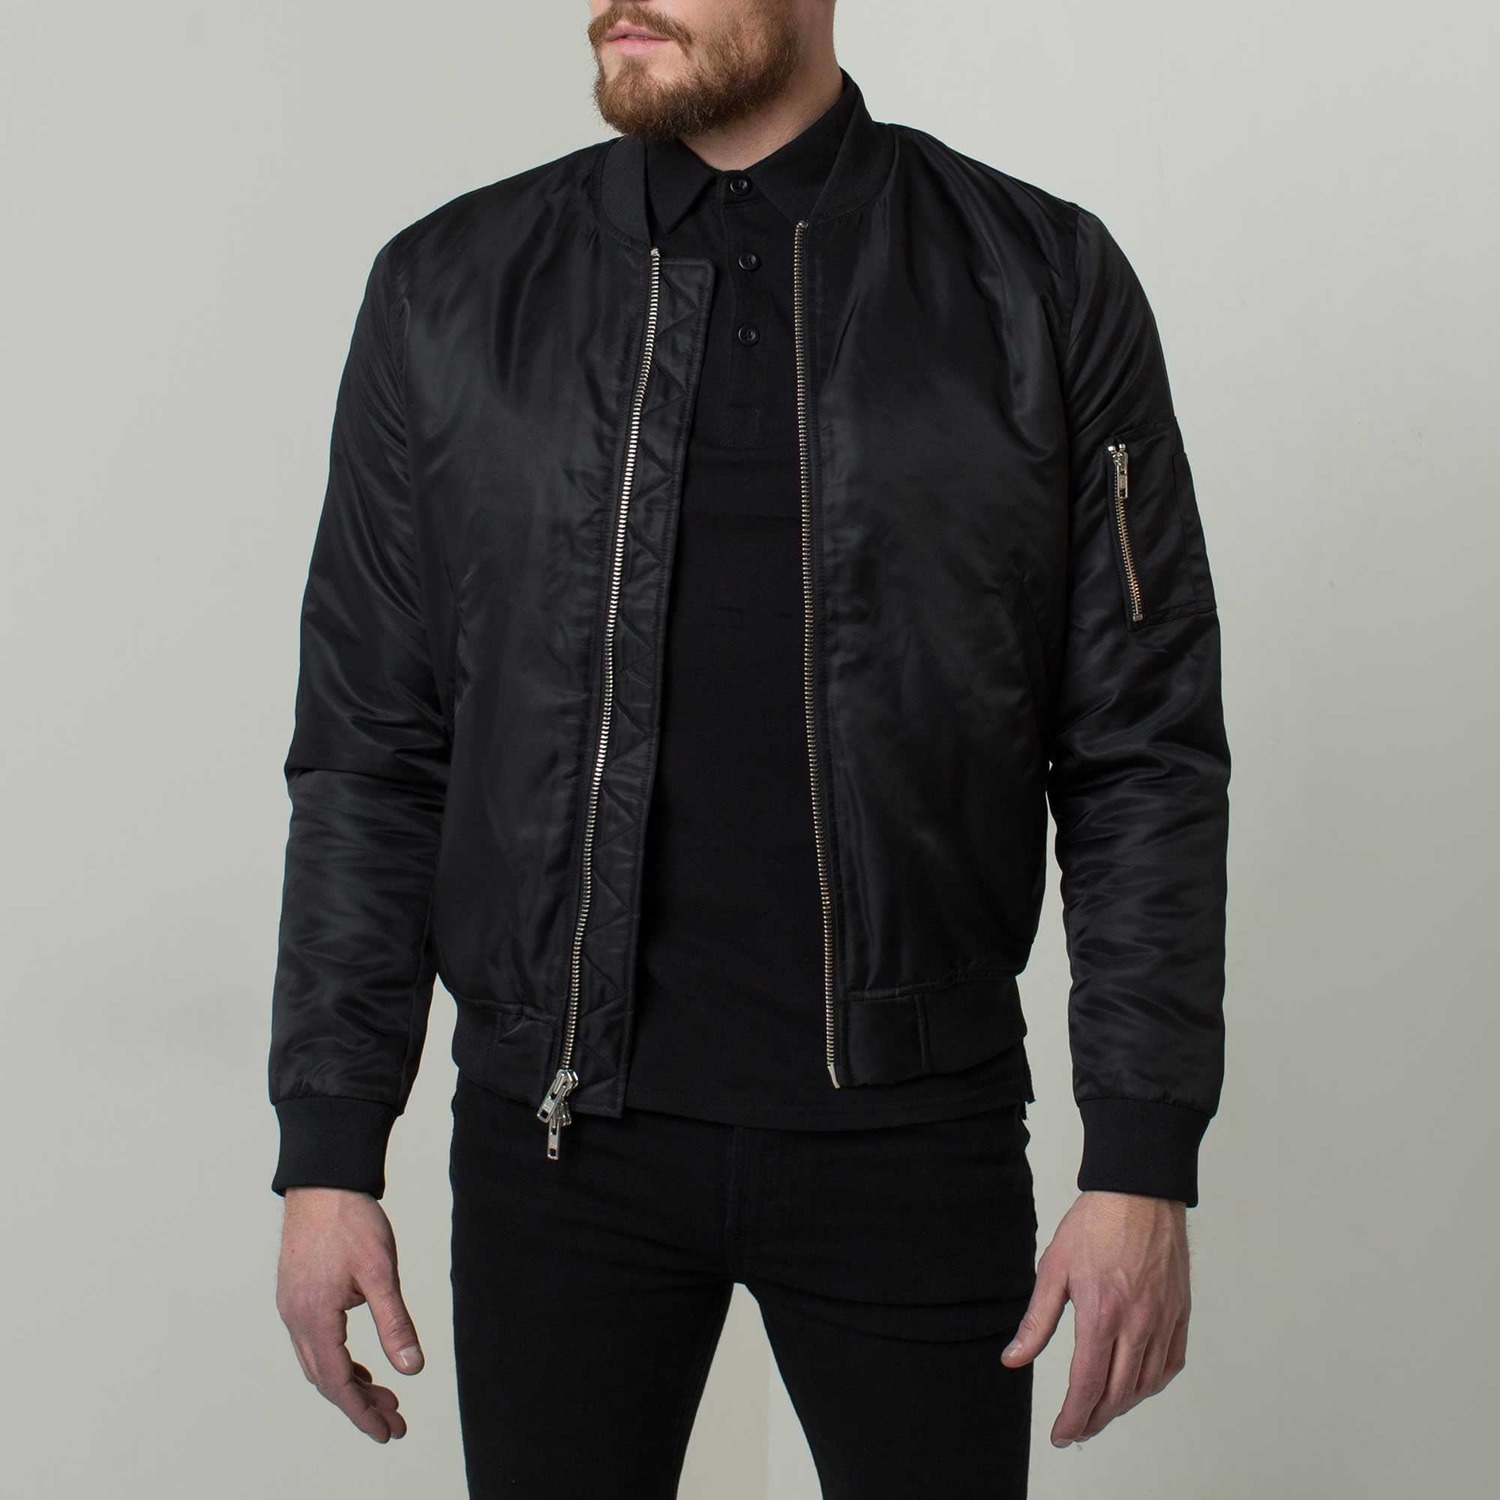 Mens Nylon Bomber Jacket With Silver Zippers In Black $145 | DSTLD